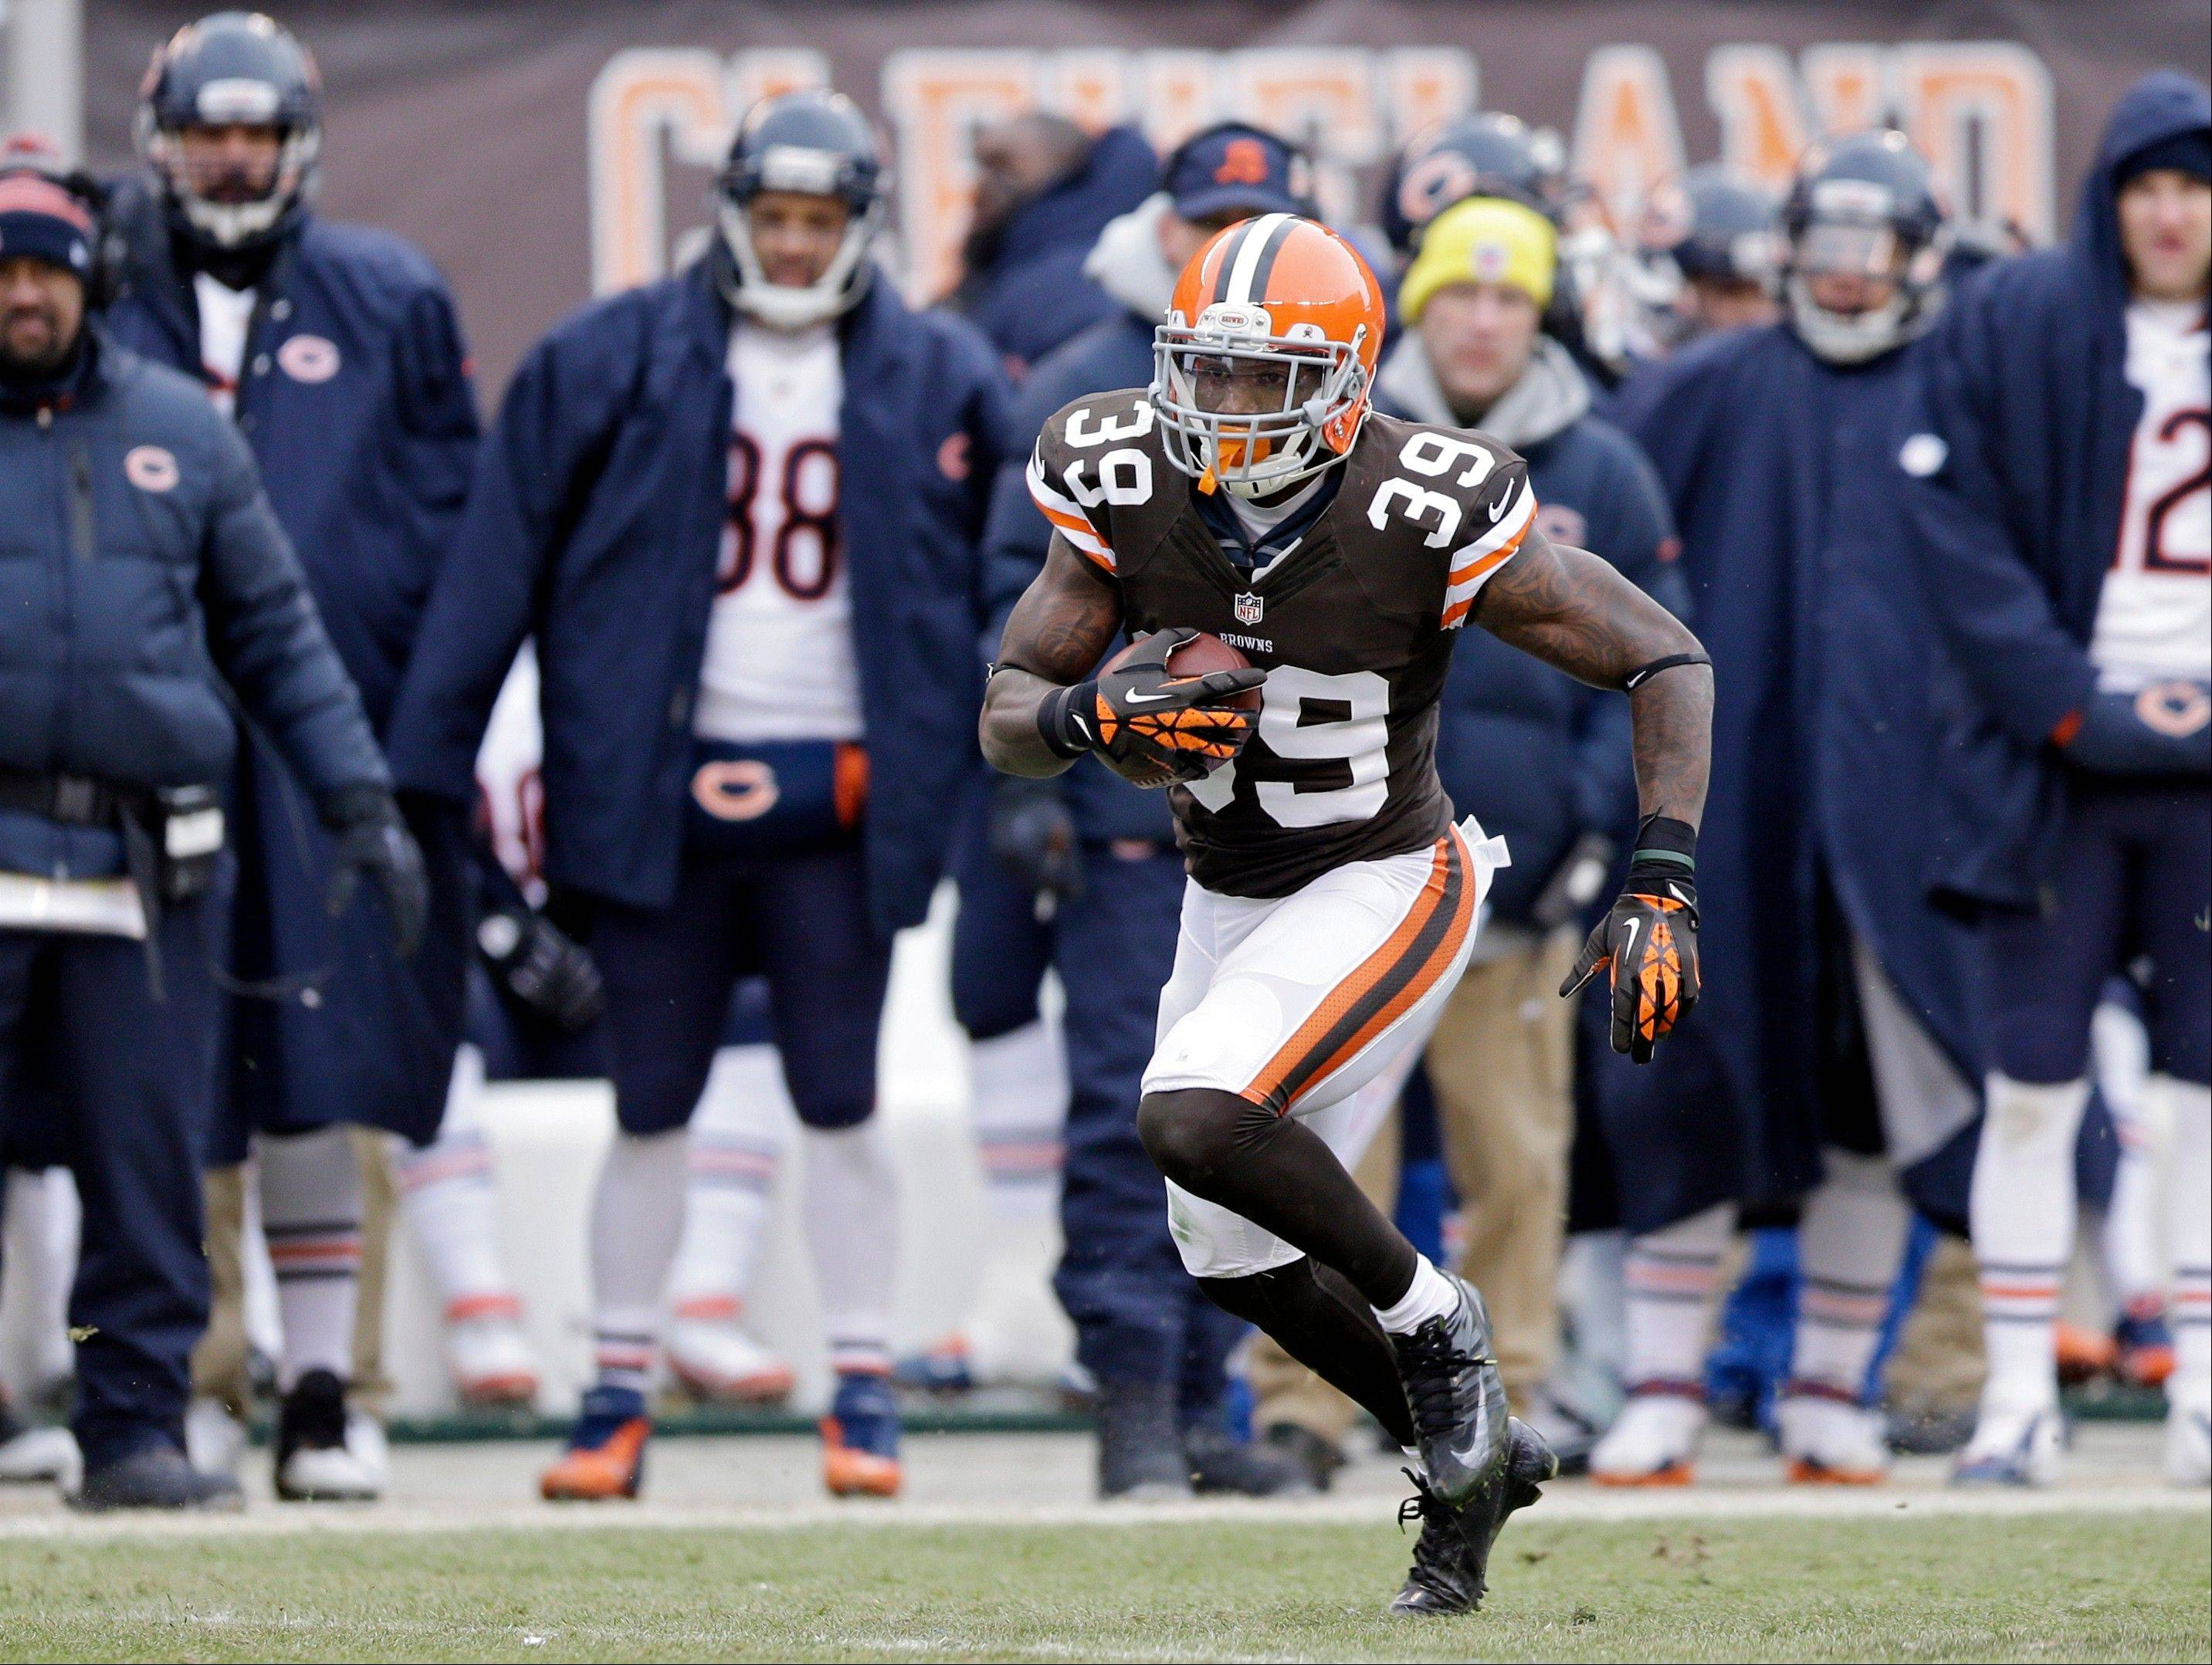 Cleveland Browns free safety Tashaun Gipson (39) returns in interception 44 yards for a touchdown against the Chicago Bears in the first half.